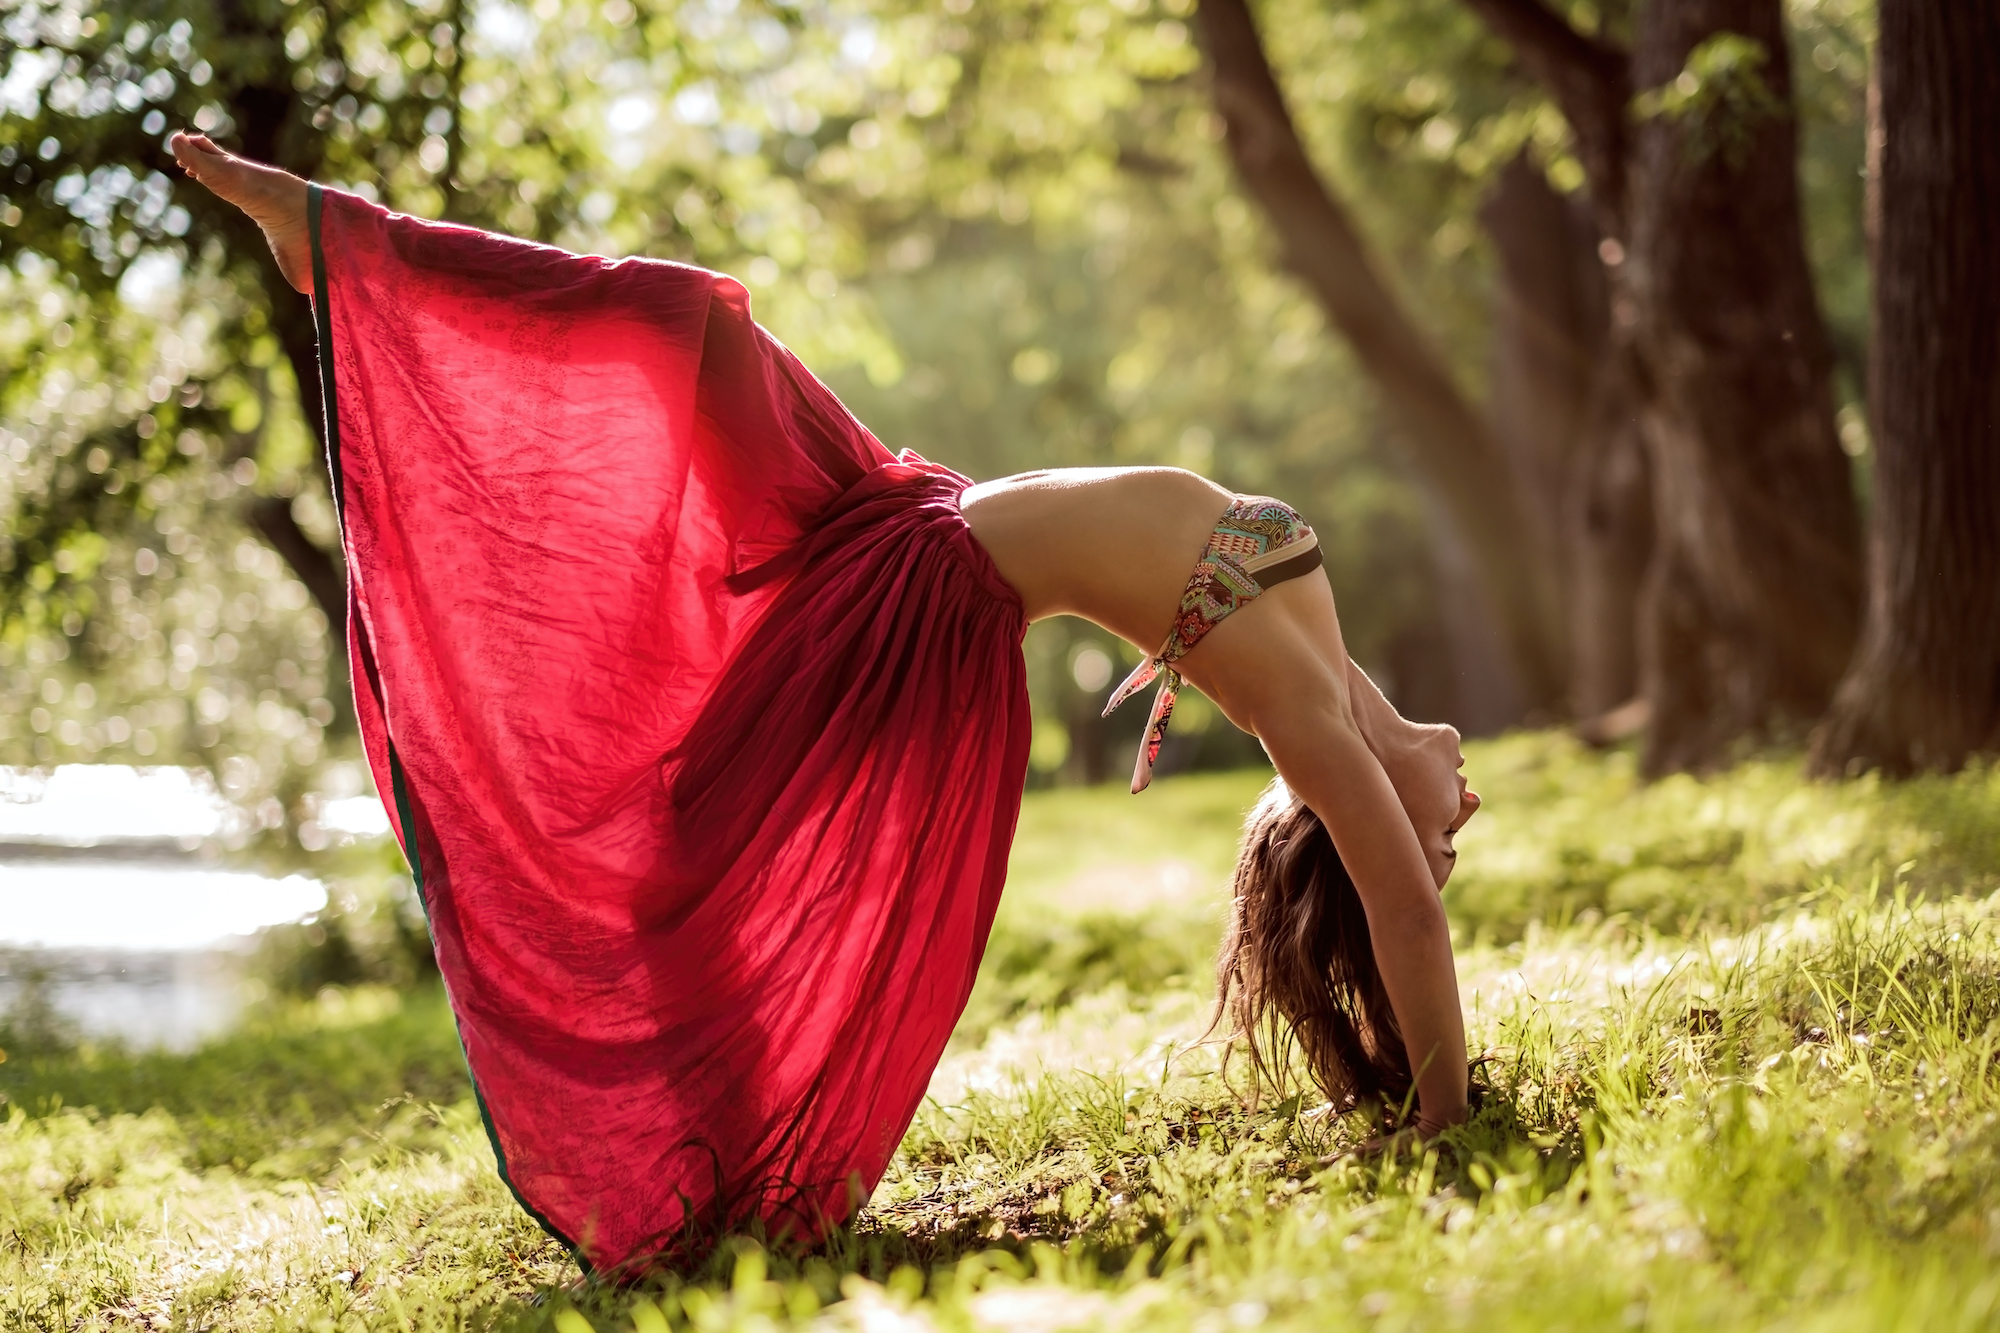 Fit young beautiful woman wearing red skirt working out outdoors in park on summer day, doing Bridge Pose, Urdhva Dhanurasana Upward Bow , Chakrasana Wheel from yoga